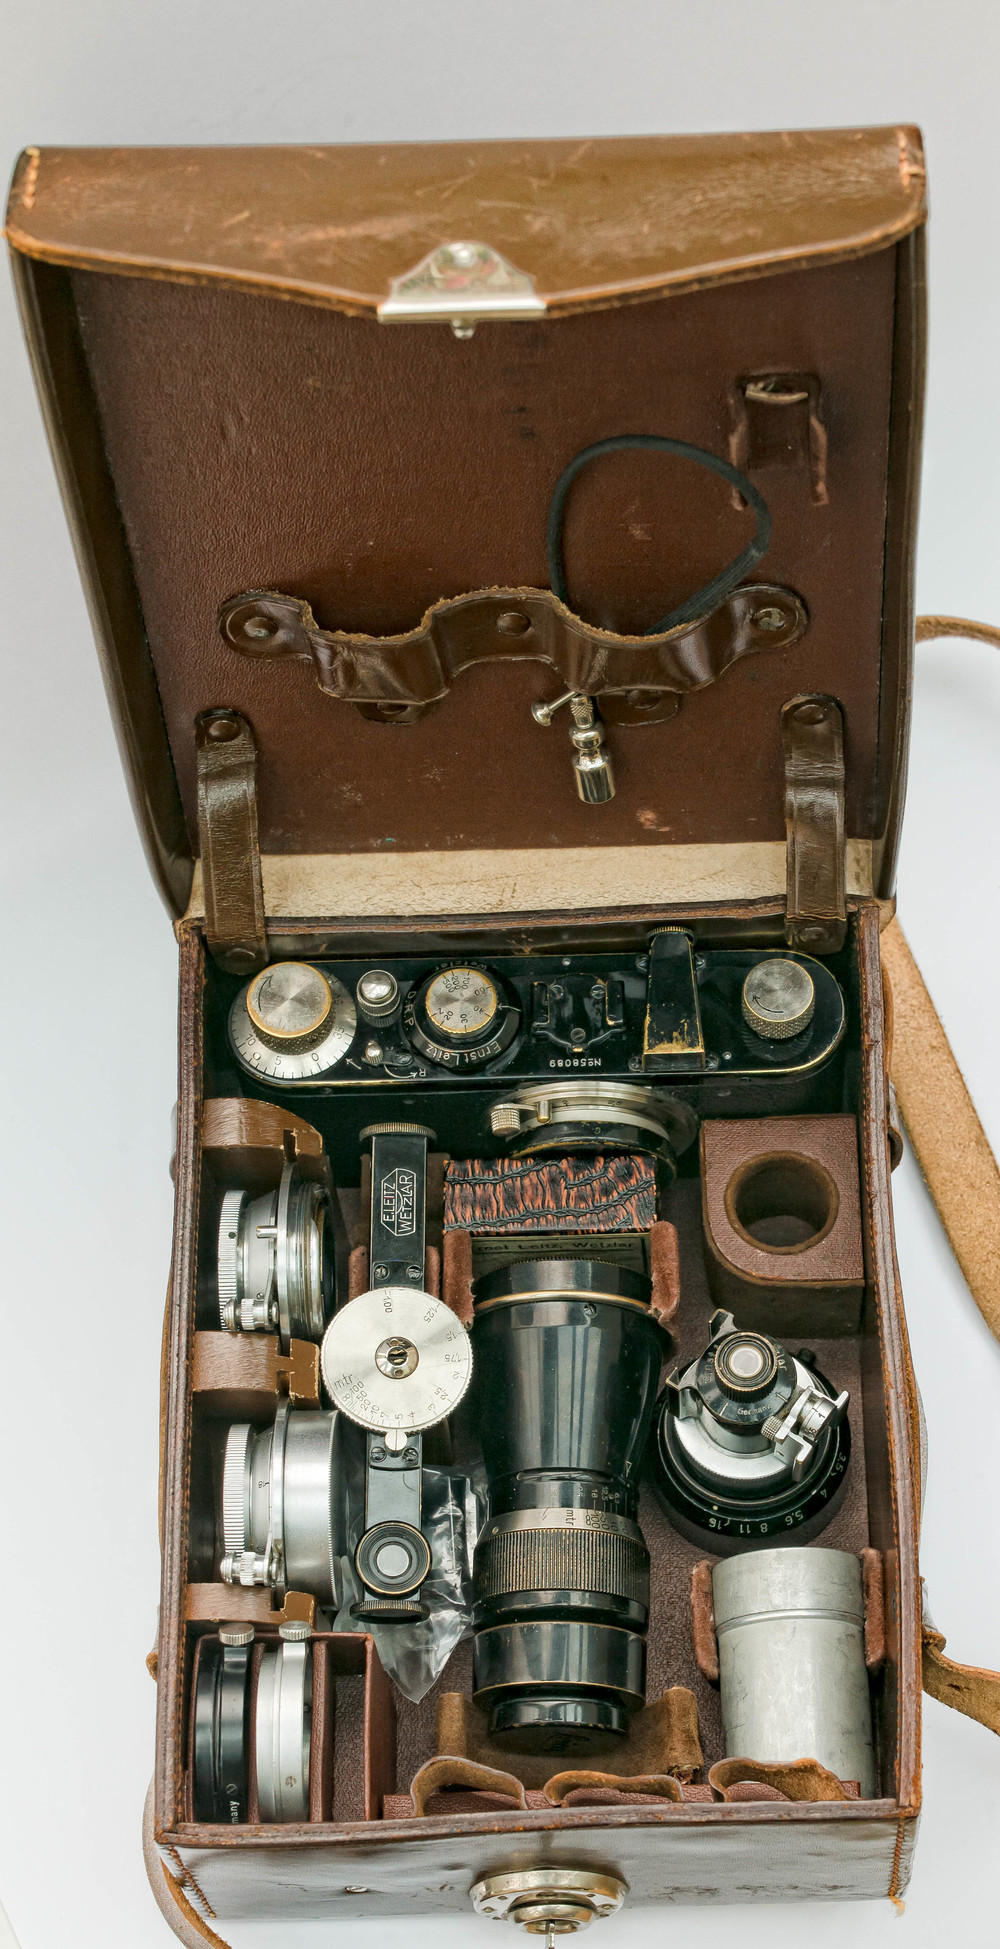 This is an ETGAM case which is the forerunner of all those modern Billinghams and LowePros stuffed with cameras and lenses. When Leica introduced the interchangeable lens on the Leica 1 Model C, they also introduced the concept of a camera outfit case at the same time and often sold them with complete outfits. This resembles a very tiny suitcase but it can be carried on its shoulder strap and it is much smaller than most of today's cases.  This one contains a 1 Model C from 1930 with a 50mm Elmar, a 10.5cm Mountain Elmar, a 2.8cm Hektor, a 3.5cm Elmar, a FOFER rangefinder, VIDOM and SUOOQ viewfinders, a VALOO hood with aperture changing feature, a spare FILCA film cassette in a metal container, an ELPIK close up lens in original box, some filters and an early cable release.  The eagle eyed will have spotted that some of these items are chrome rather than nickel but I did not get all of the items here with the case, just some of them, and I have built this outfit myself from the results of several auctions. This, of course, provides an excellent excuse to go on collecting the nickel equivalents! One final point of note about this case is that it came with its own tiny key which had accompanied the case for 85 years.